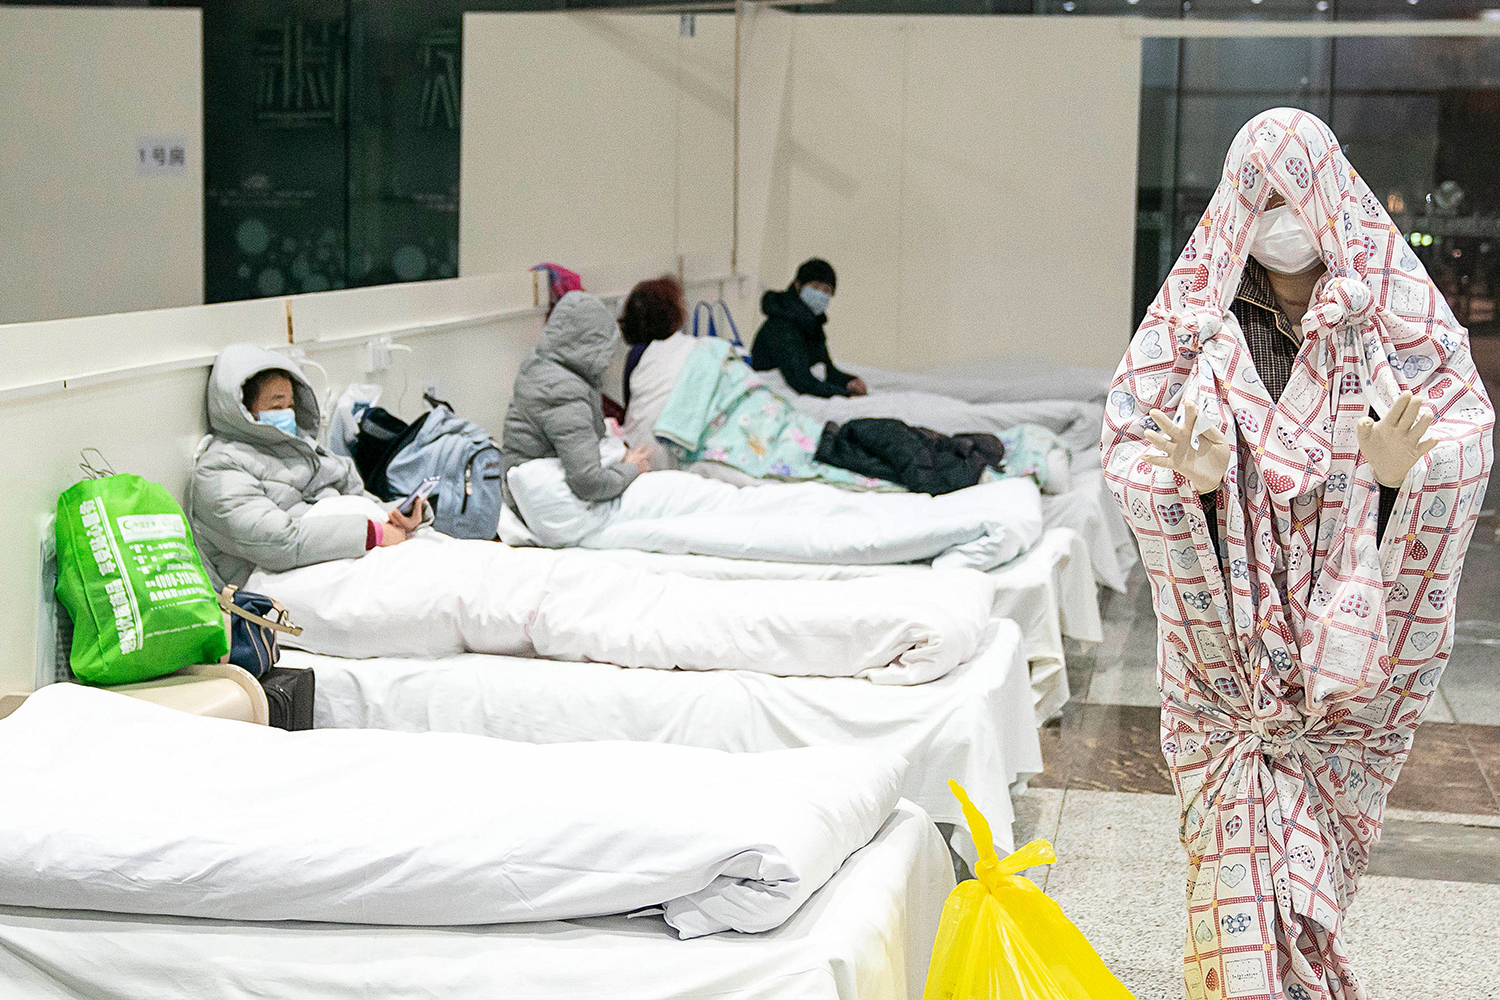 A patient walks between hospital beds shrouded in a sheet, gloves, and a face mask at the exhibition center converted into a hospital in Wuhan on Feb. 5. STR/AFP via Getty Images